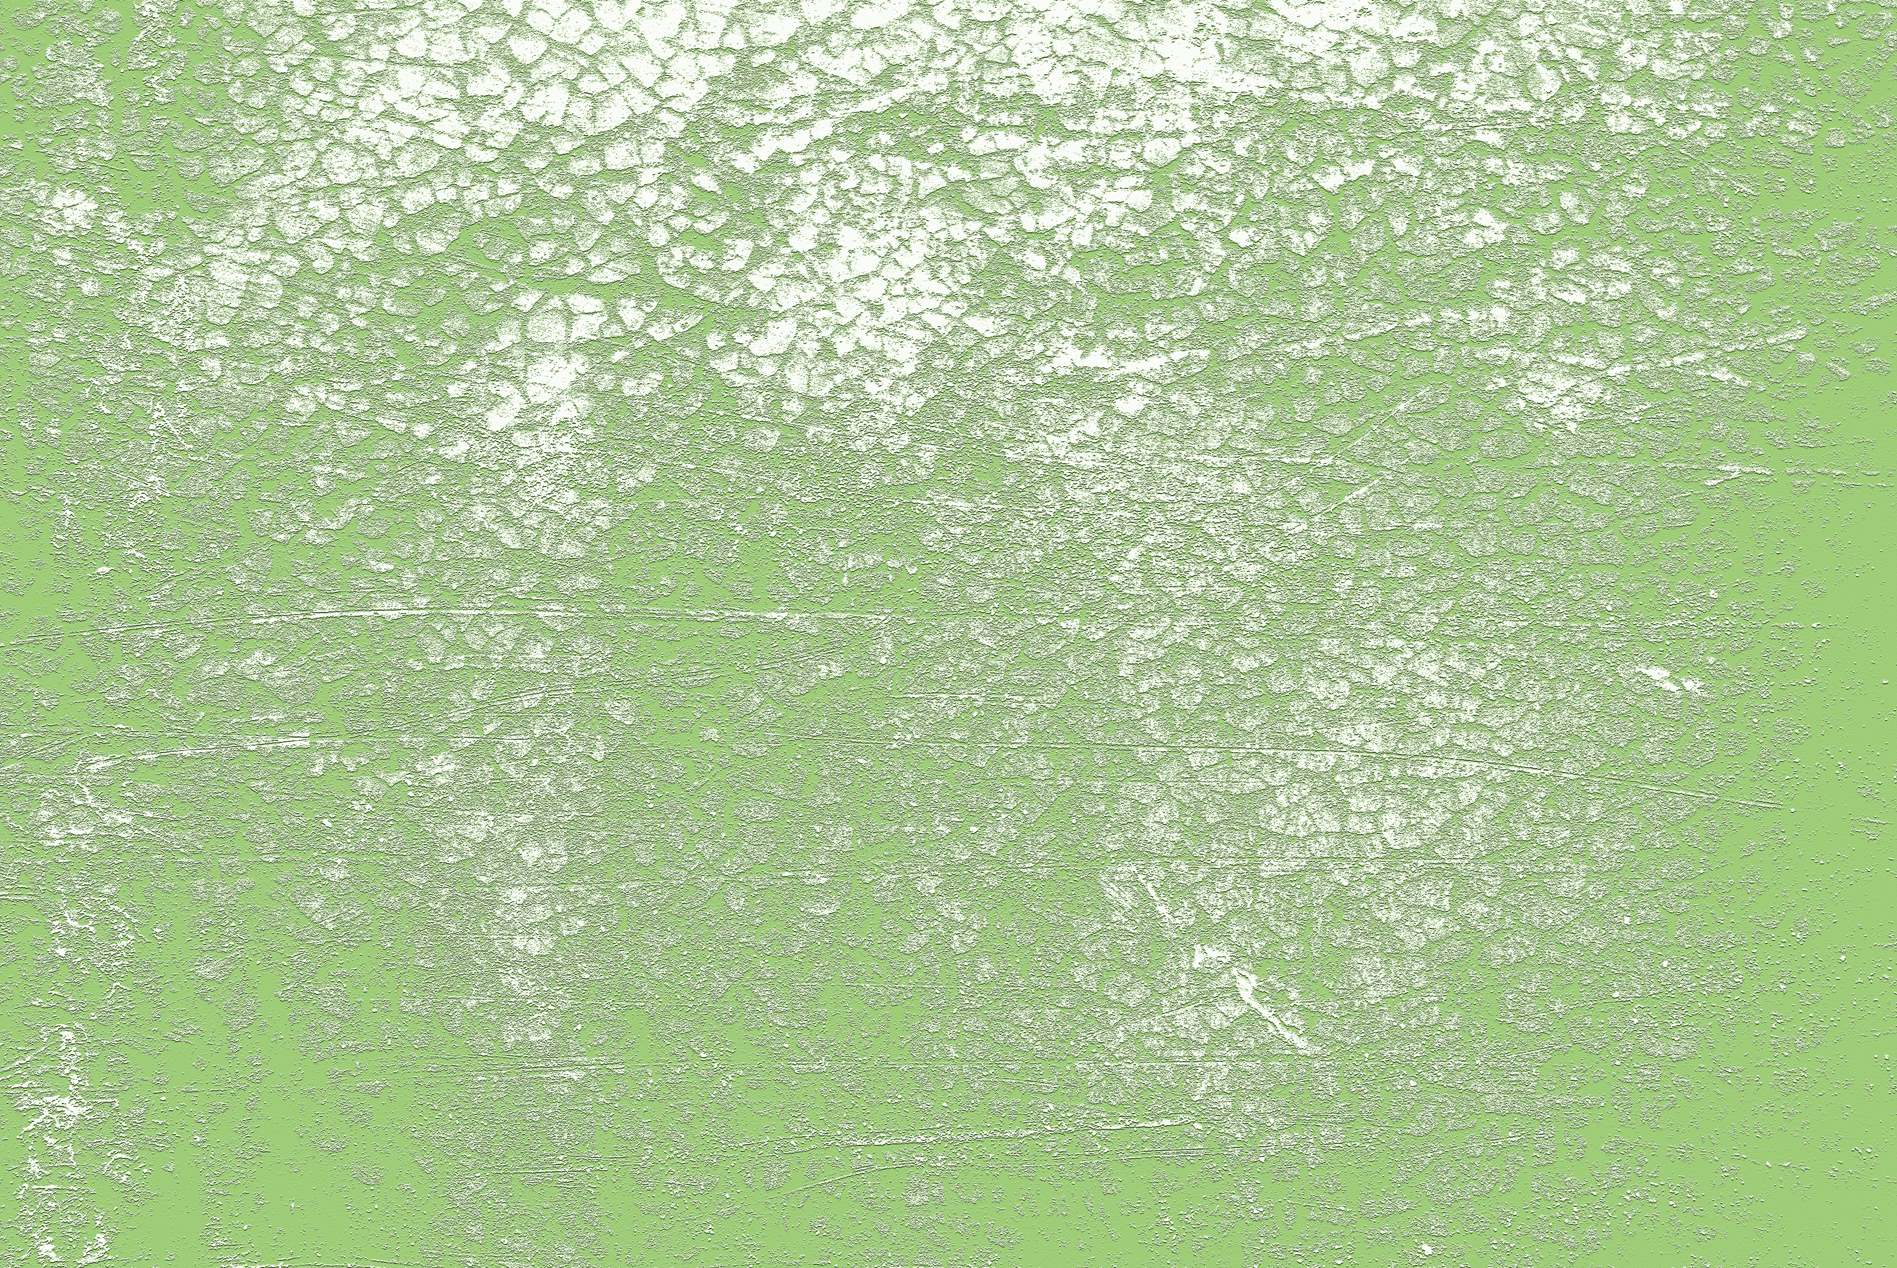 Light Green Vintage Background Texture